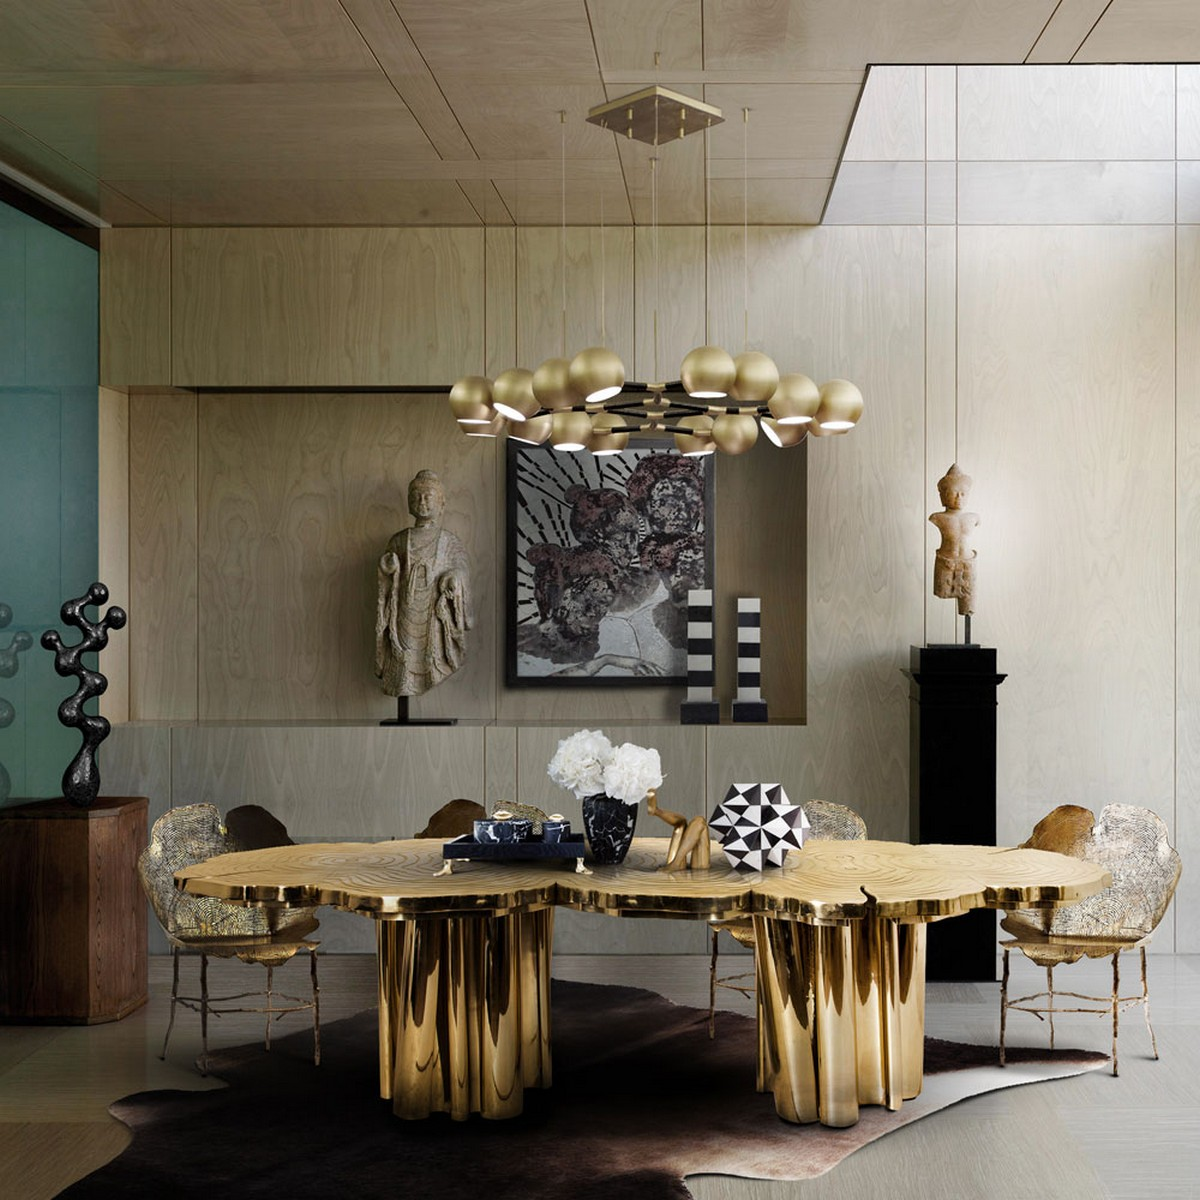 The 5 Most Expensive Dining Tables In The World expensive dining tables The 5 Most Expensive Dining Tables In The World fortuna expensive dining tables The 5 Most Expensive Dining Tables In The World fortuna